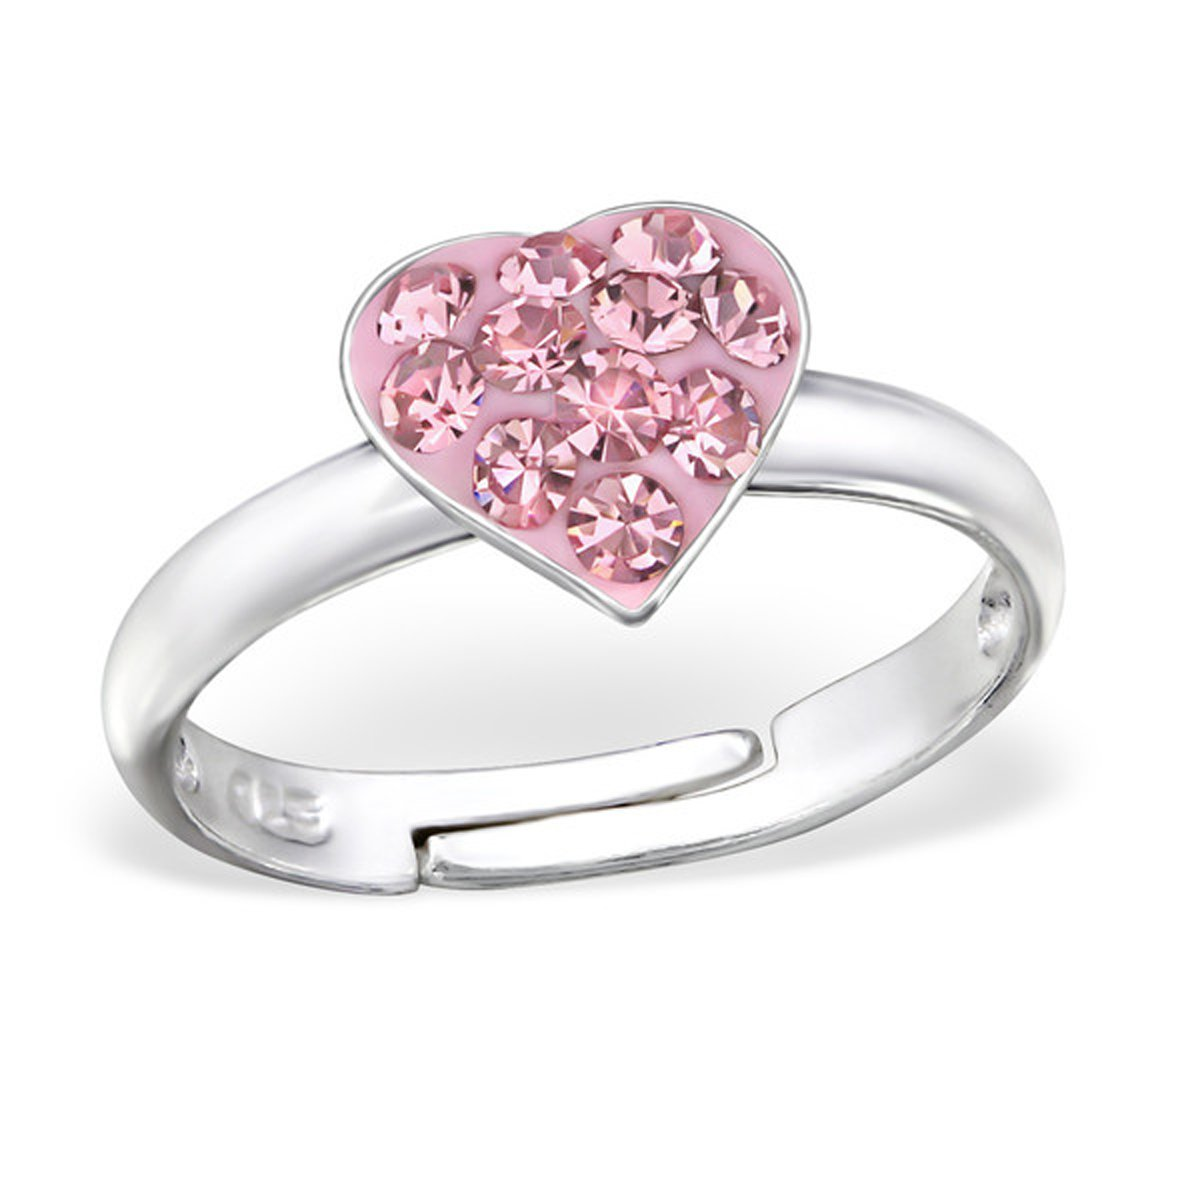 Aquamarine White Crystal Heart Ring Size Adjustable 2-4 Sterling Silver 925 (E12234) (Pink)